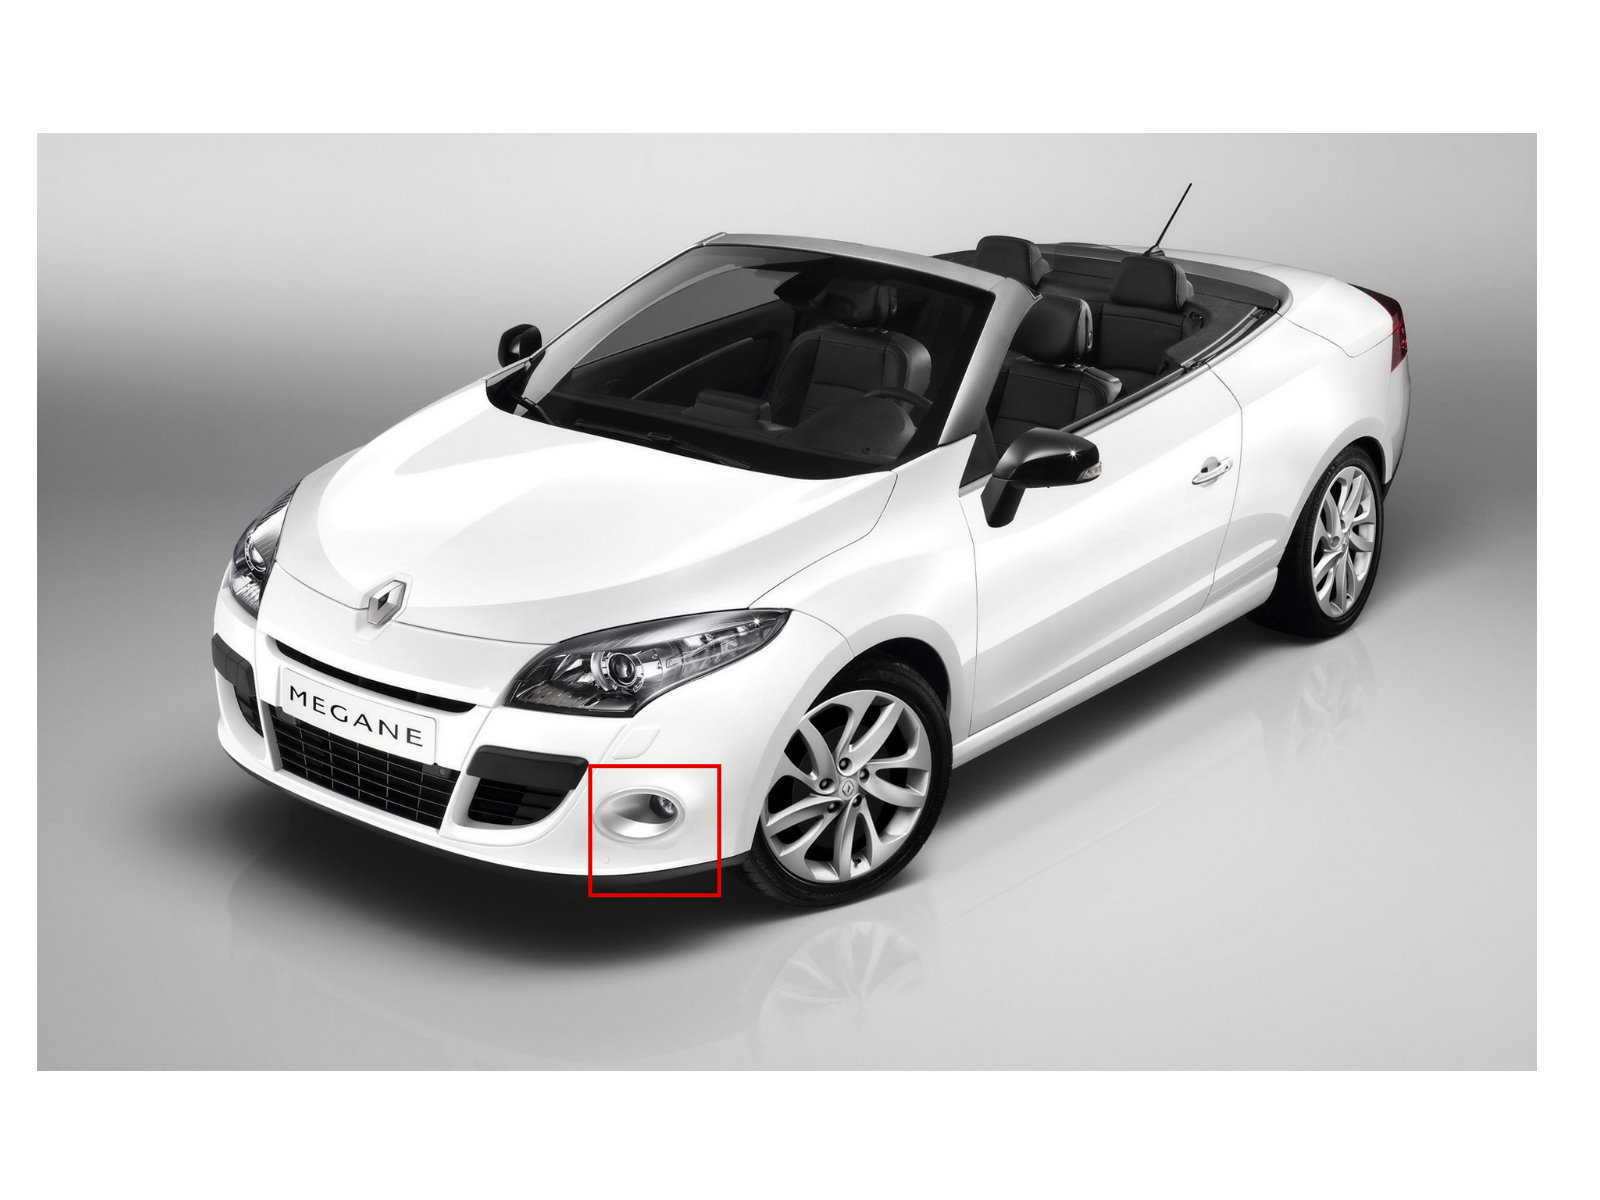 megane ii coupe cabrio 2003 2009 drl led glass fog light lamp for renault ebay. Black Bedroom Furniture Sets. Home Design Ideas